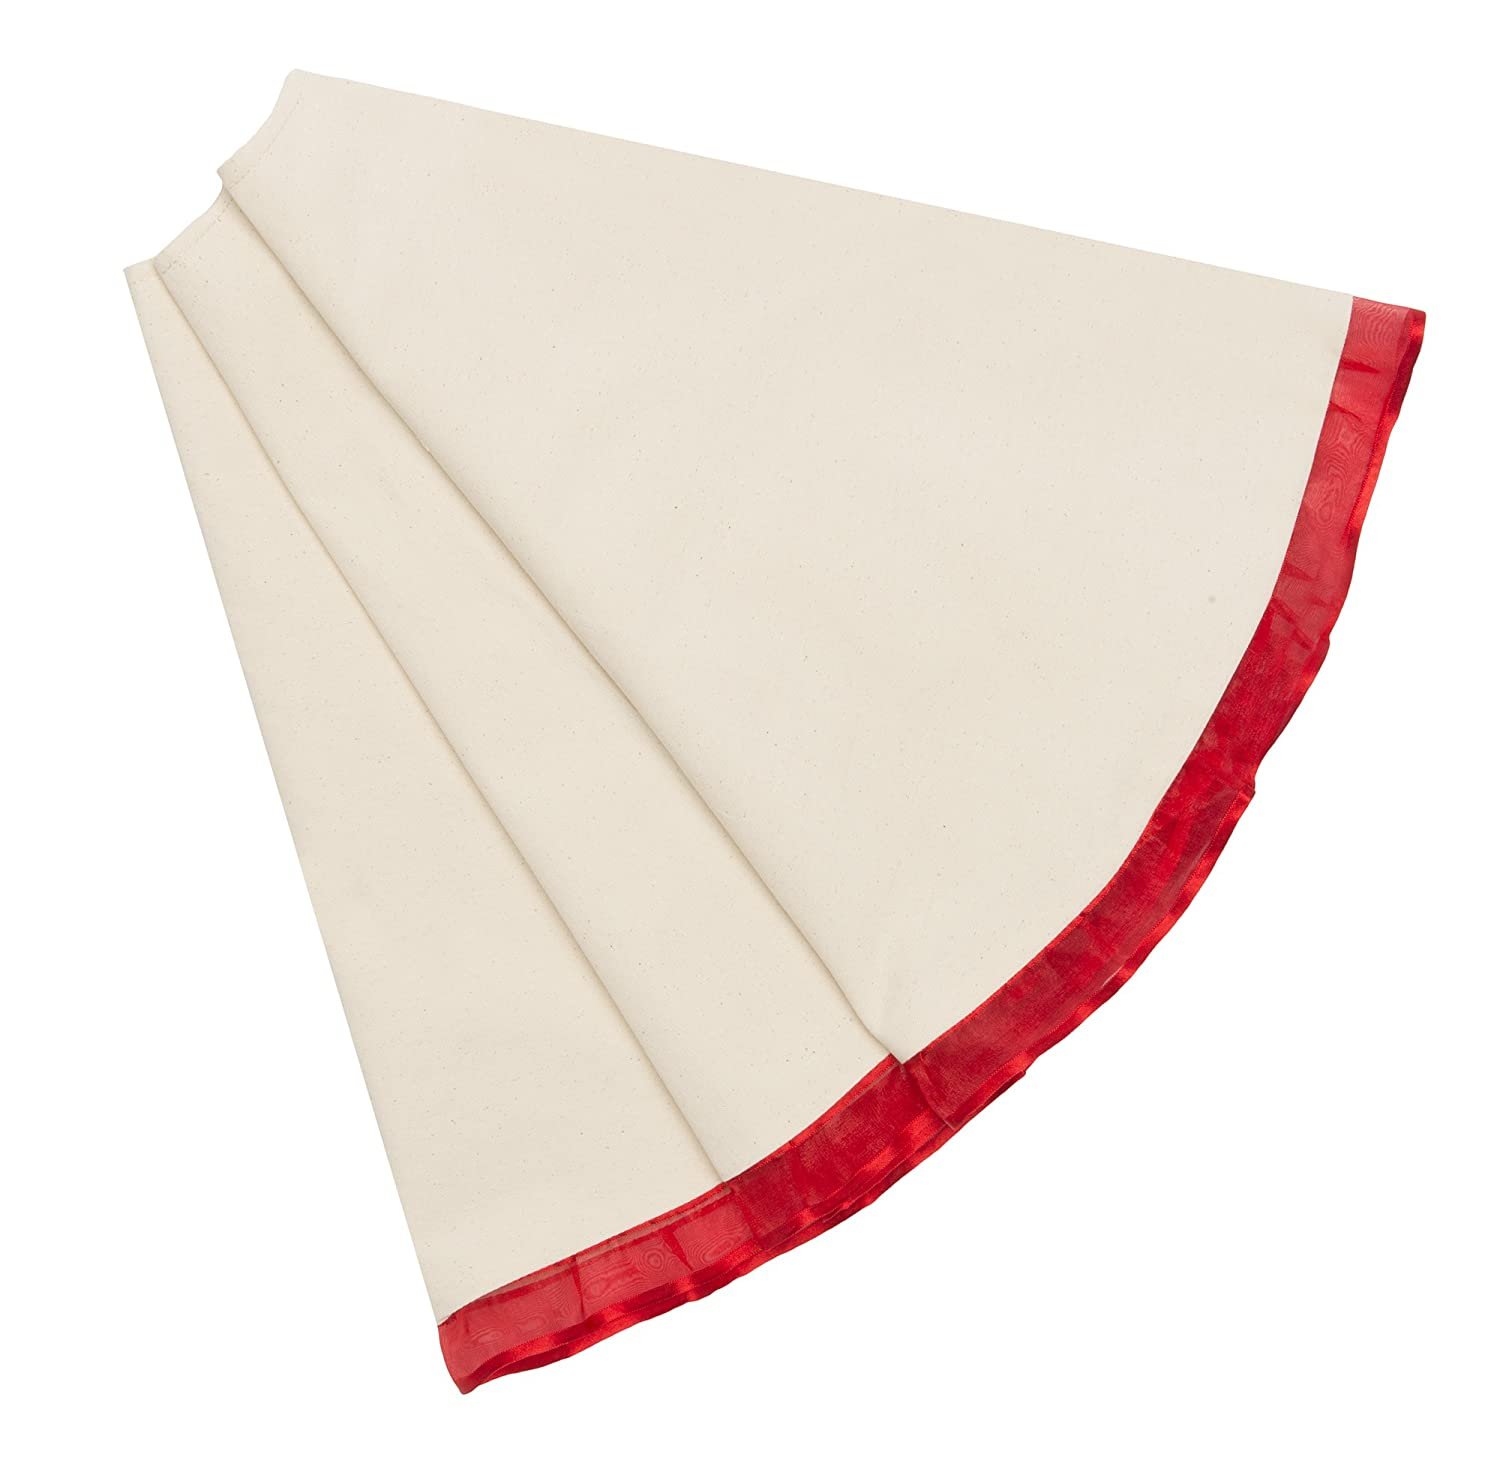 Mistletoe Mill 48 inch Cream Cotton Christmas Tree Skirt with Red Ribbon Trim